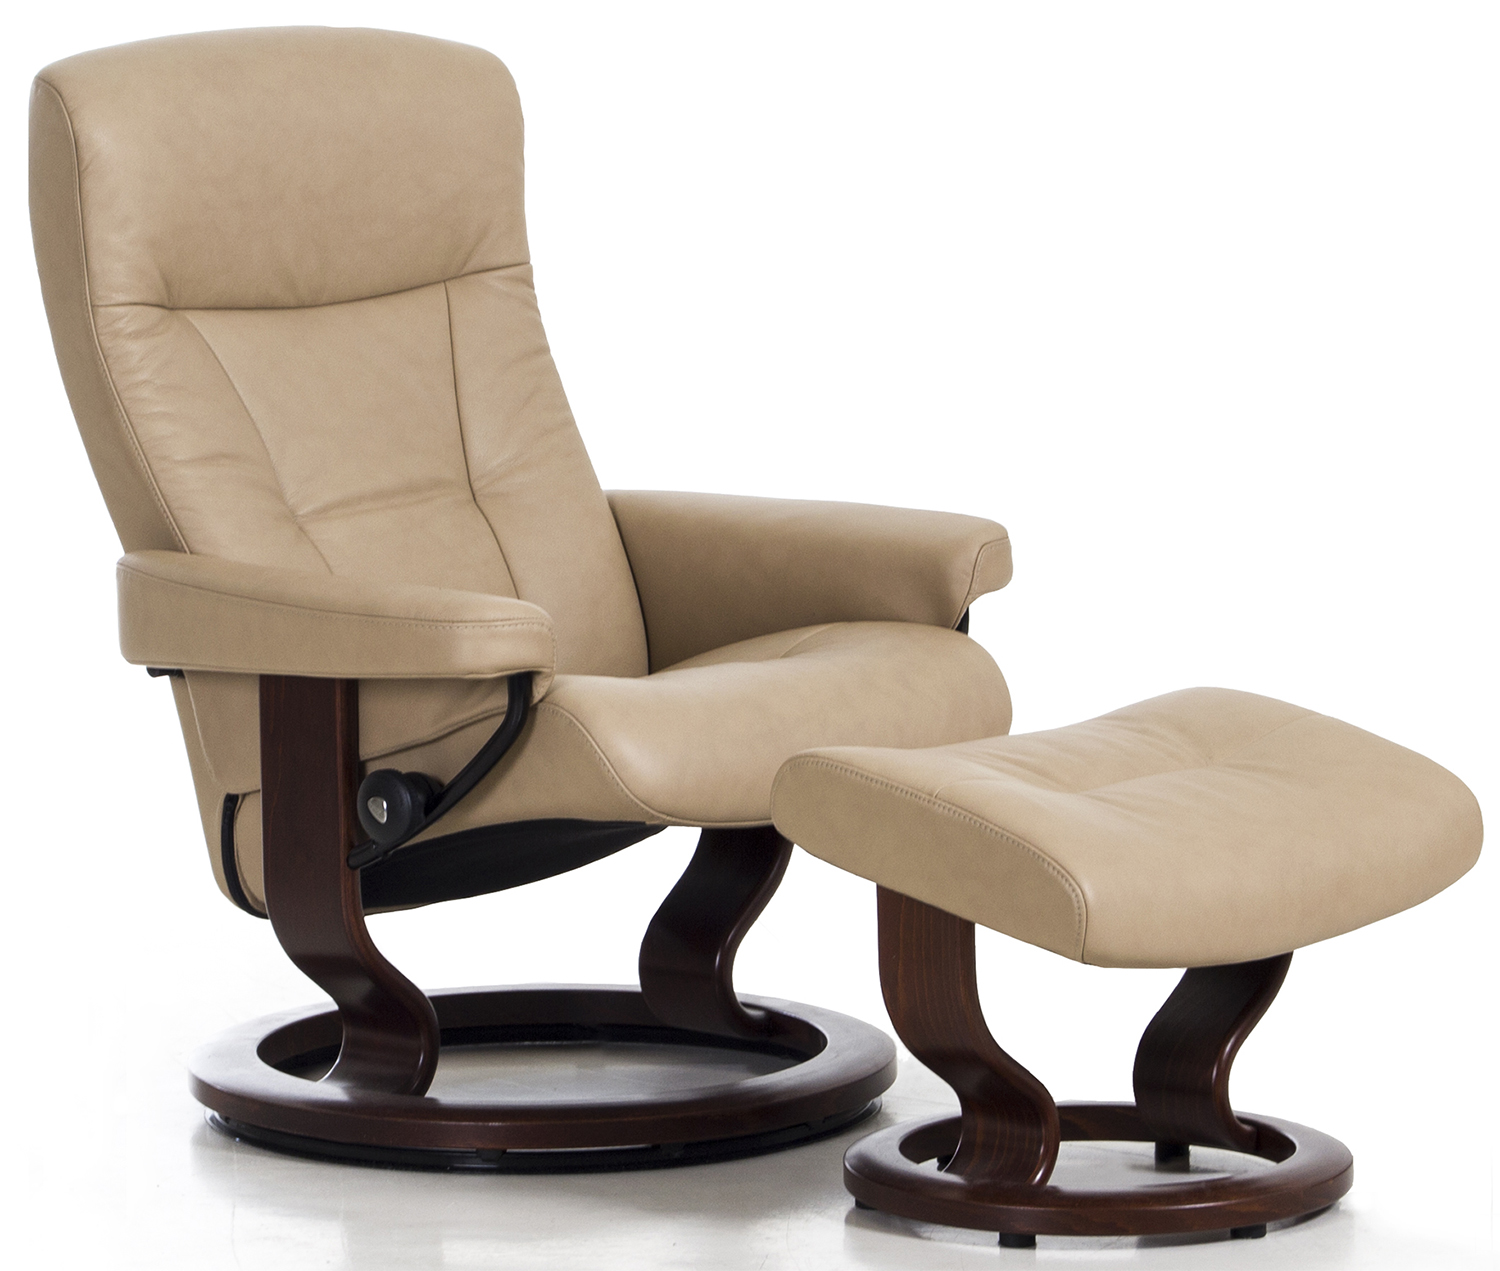 price of stressless recliners  stressless by ekornes